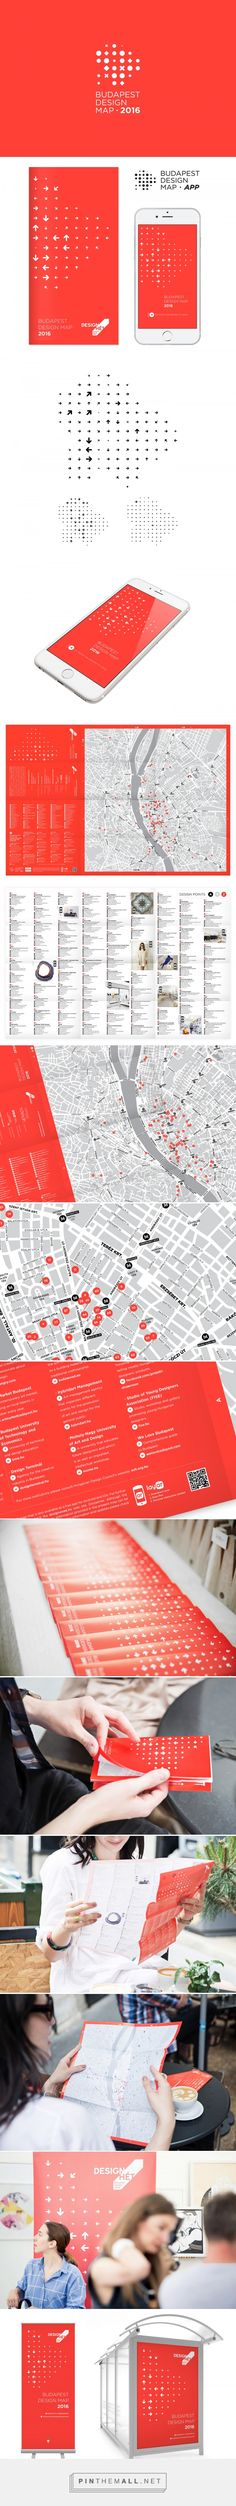 Budapest Design Map, 2016 on Behance